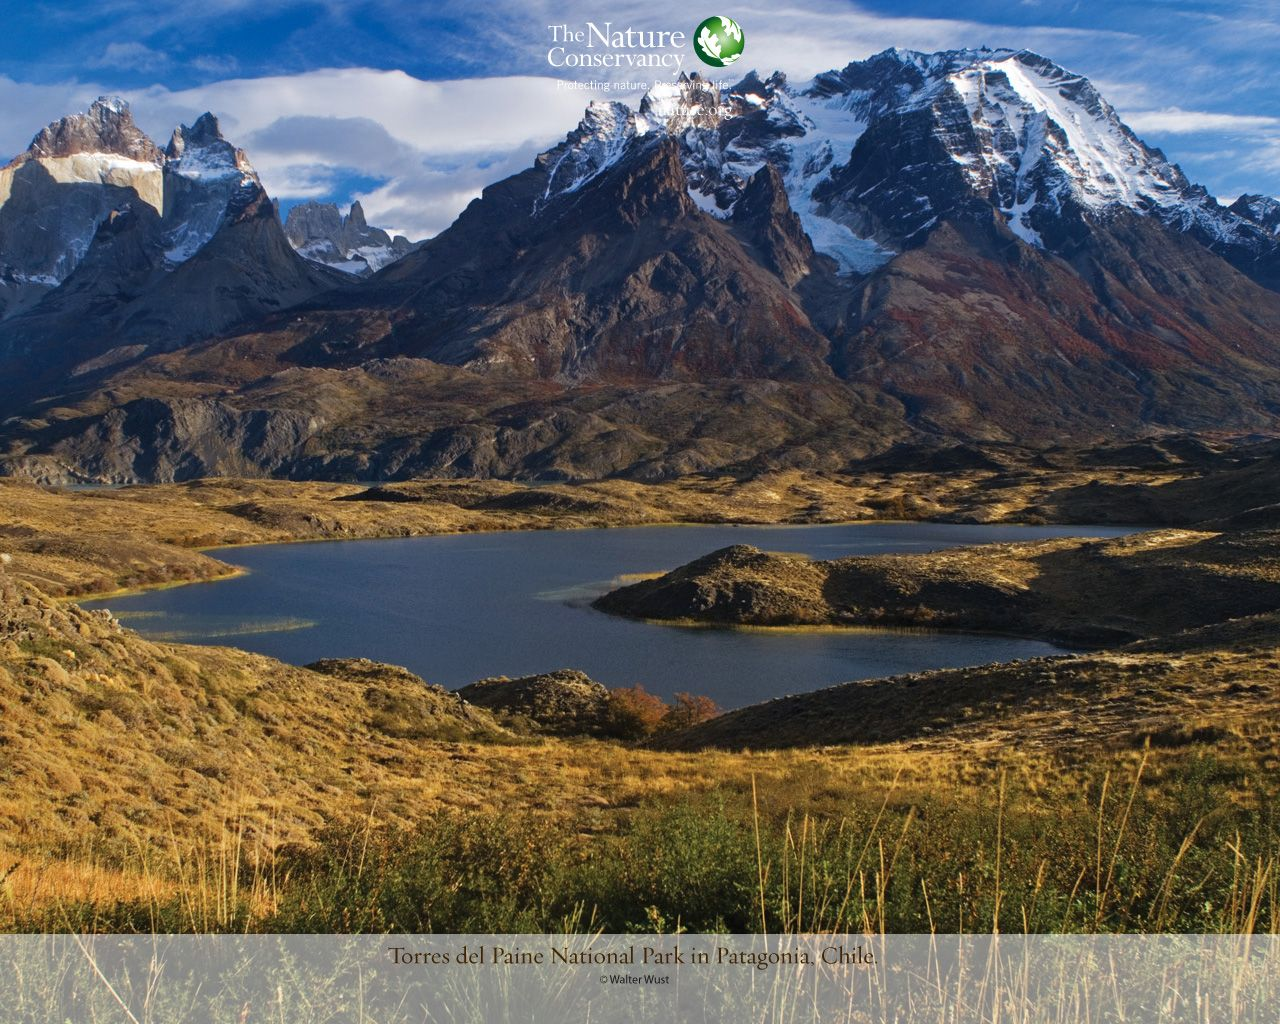 Torres Del Paine National Park Patagonia Chile Nature Travel Spot Nature Conservation